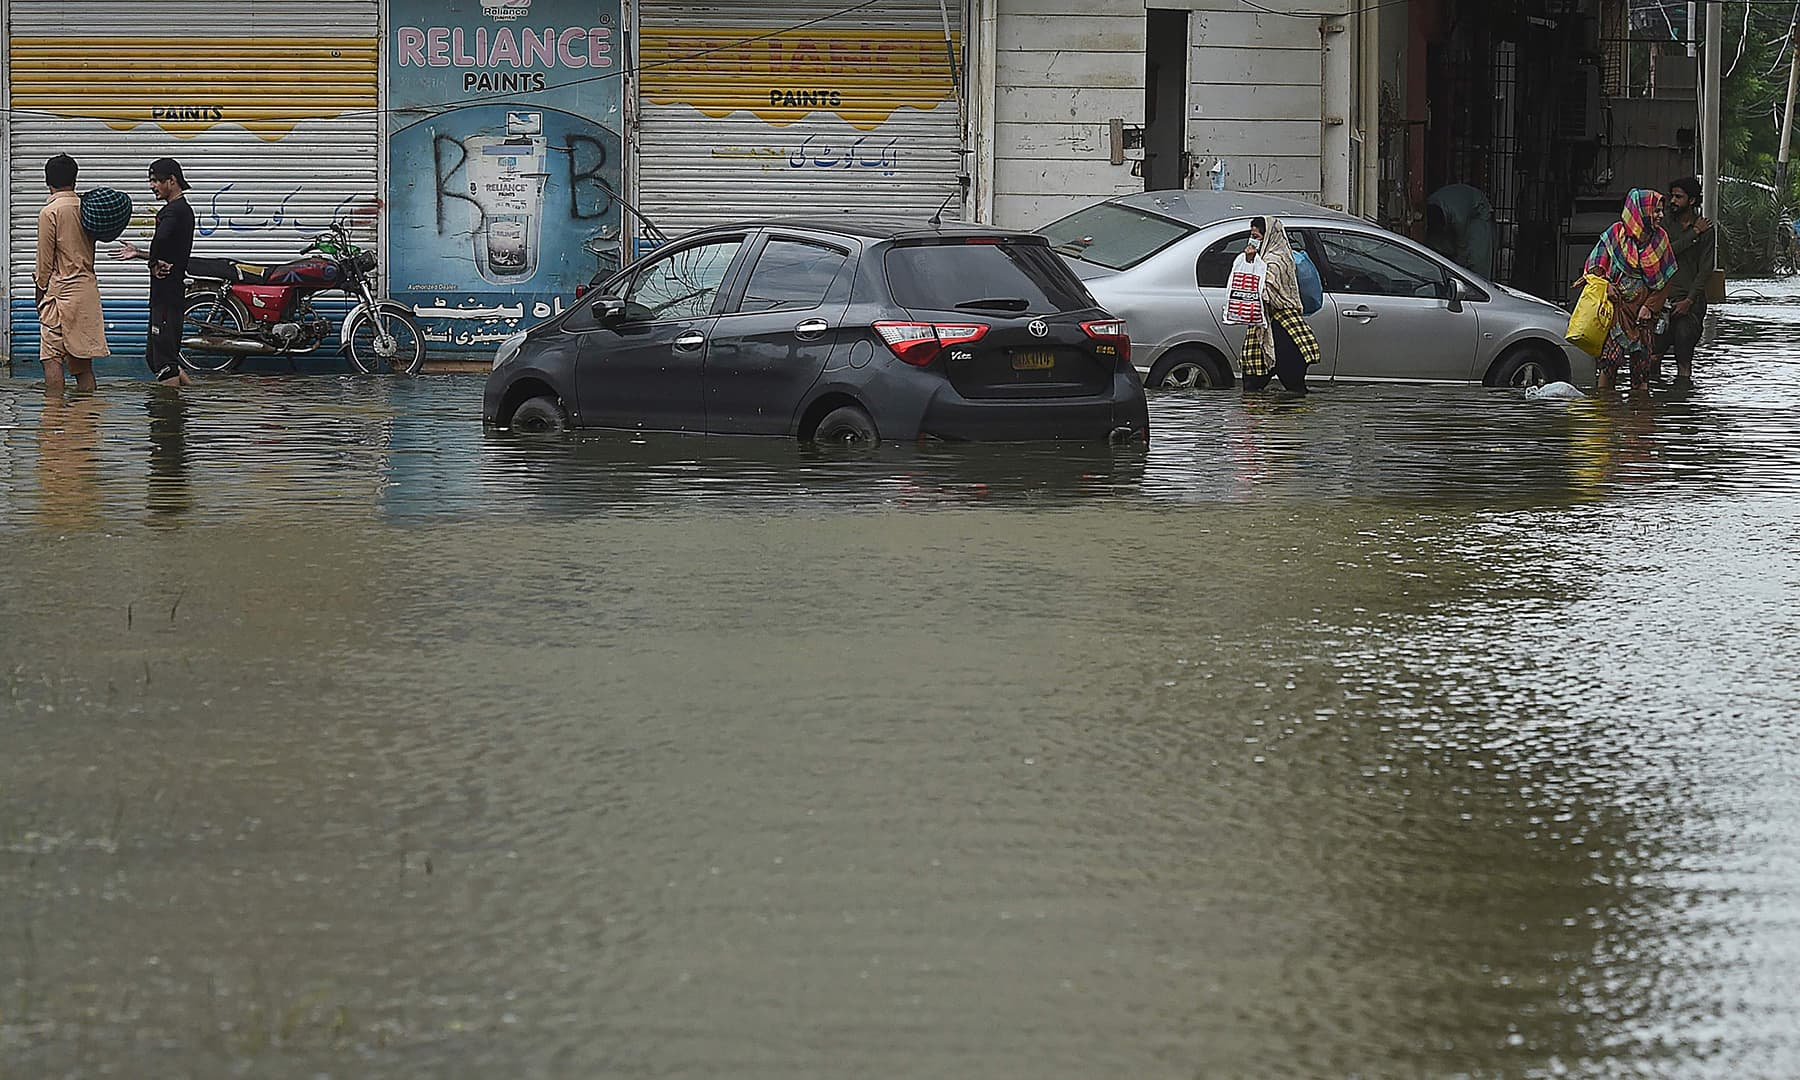 Residents wade through a flooded residential area following heavy monsoon rains in Karachi on August 31. — AFP